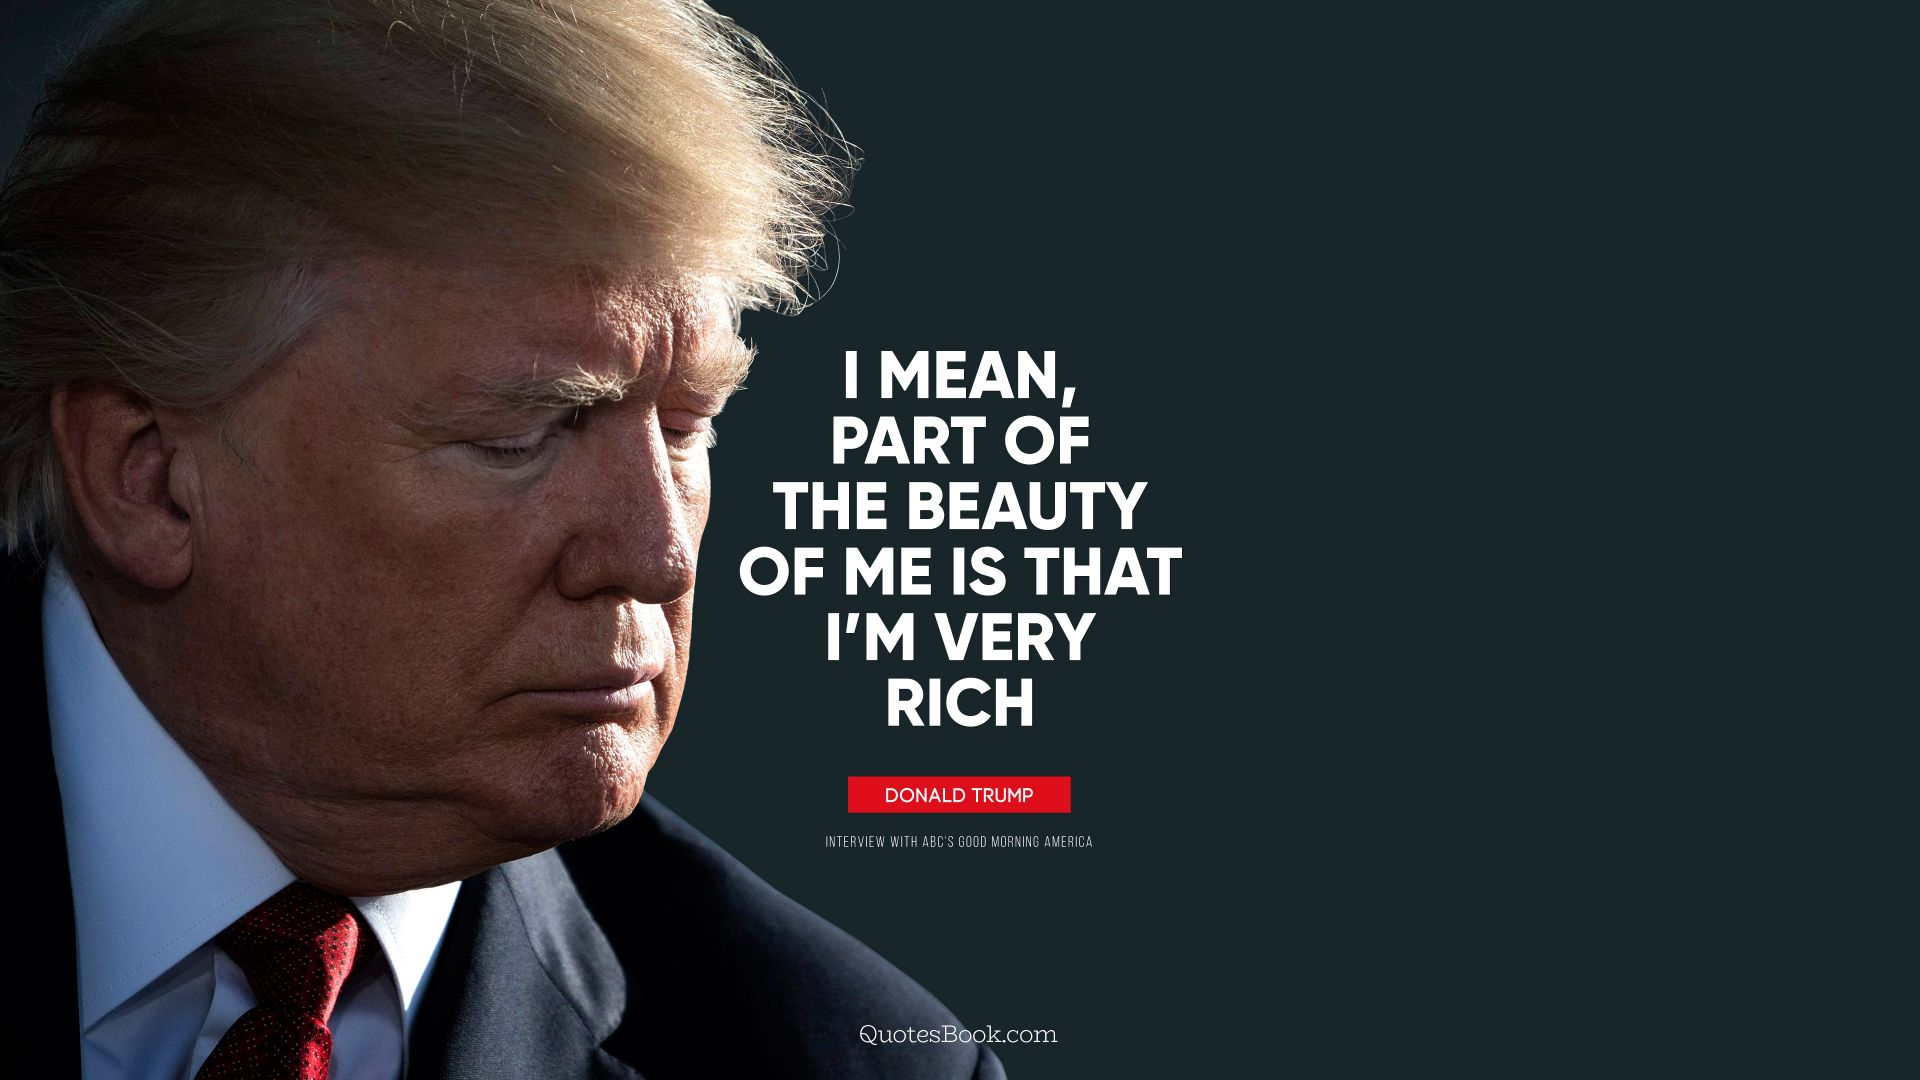 I mean, part of the beauty of me is that i'm very rich. - Quote by Donald Trump